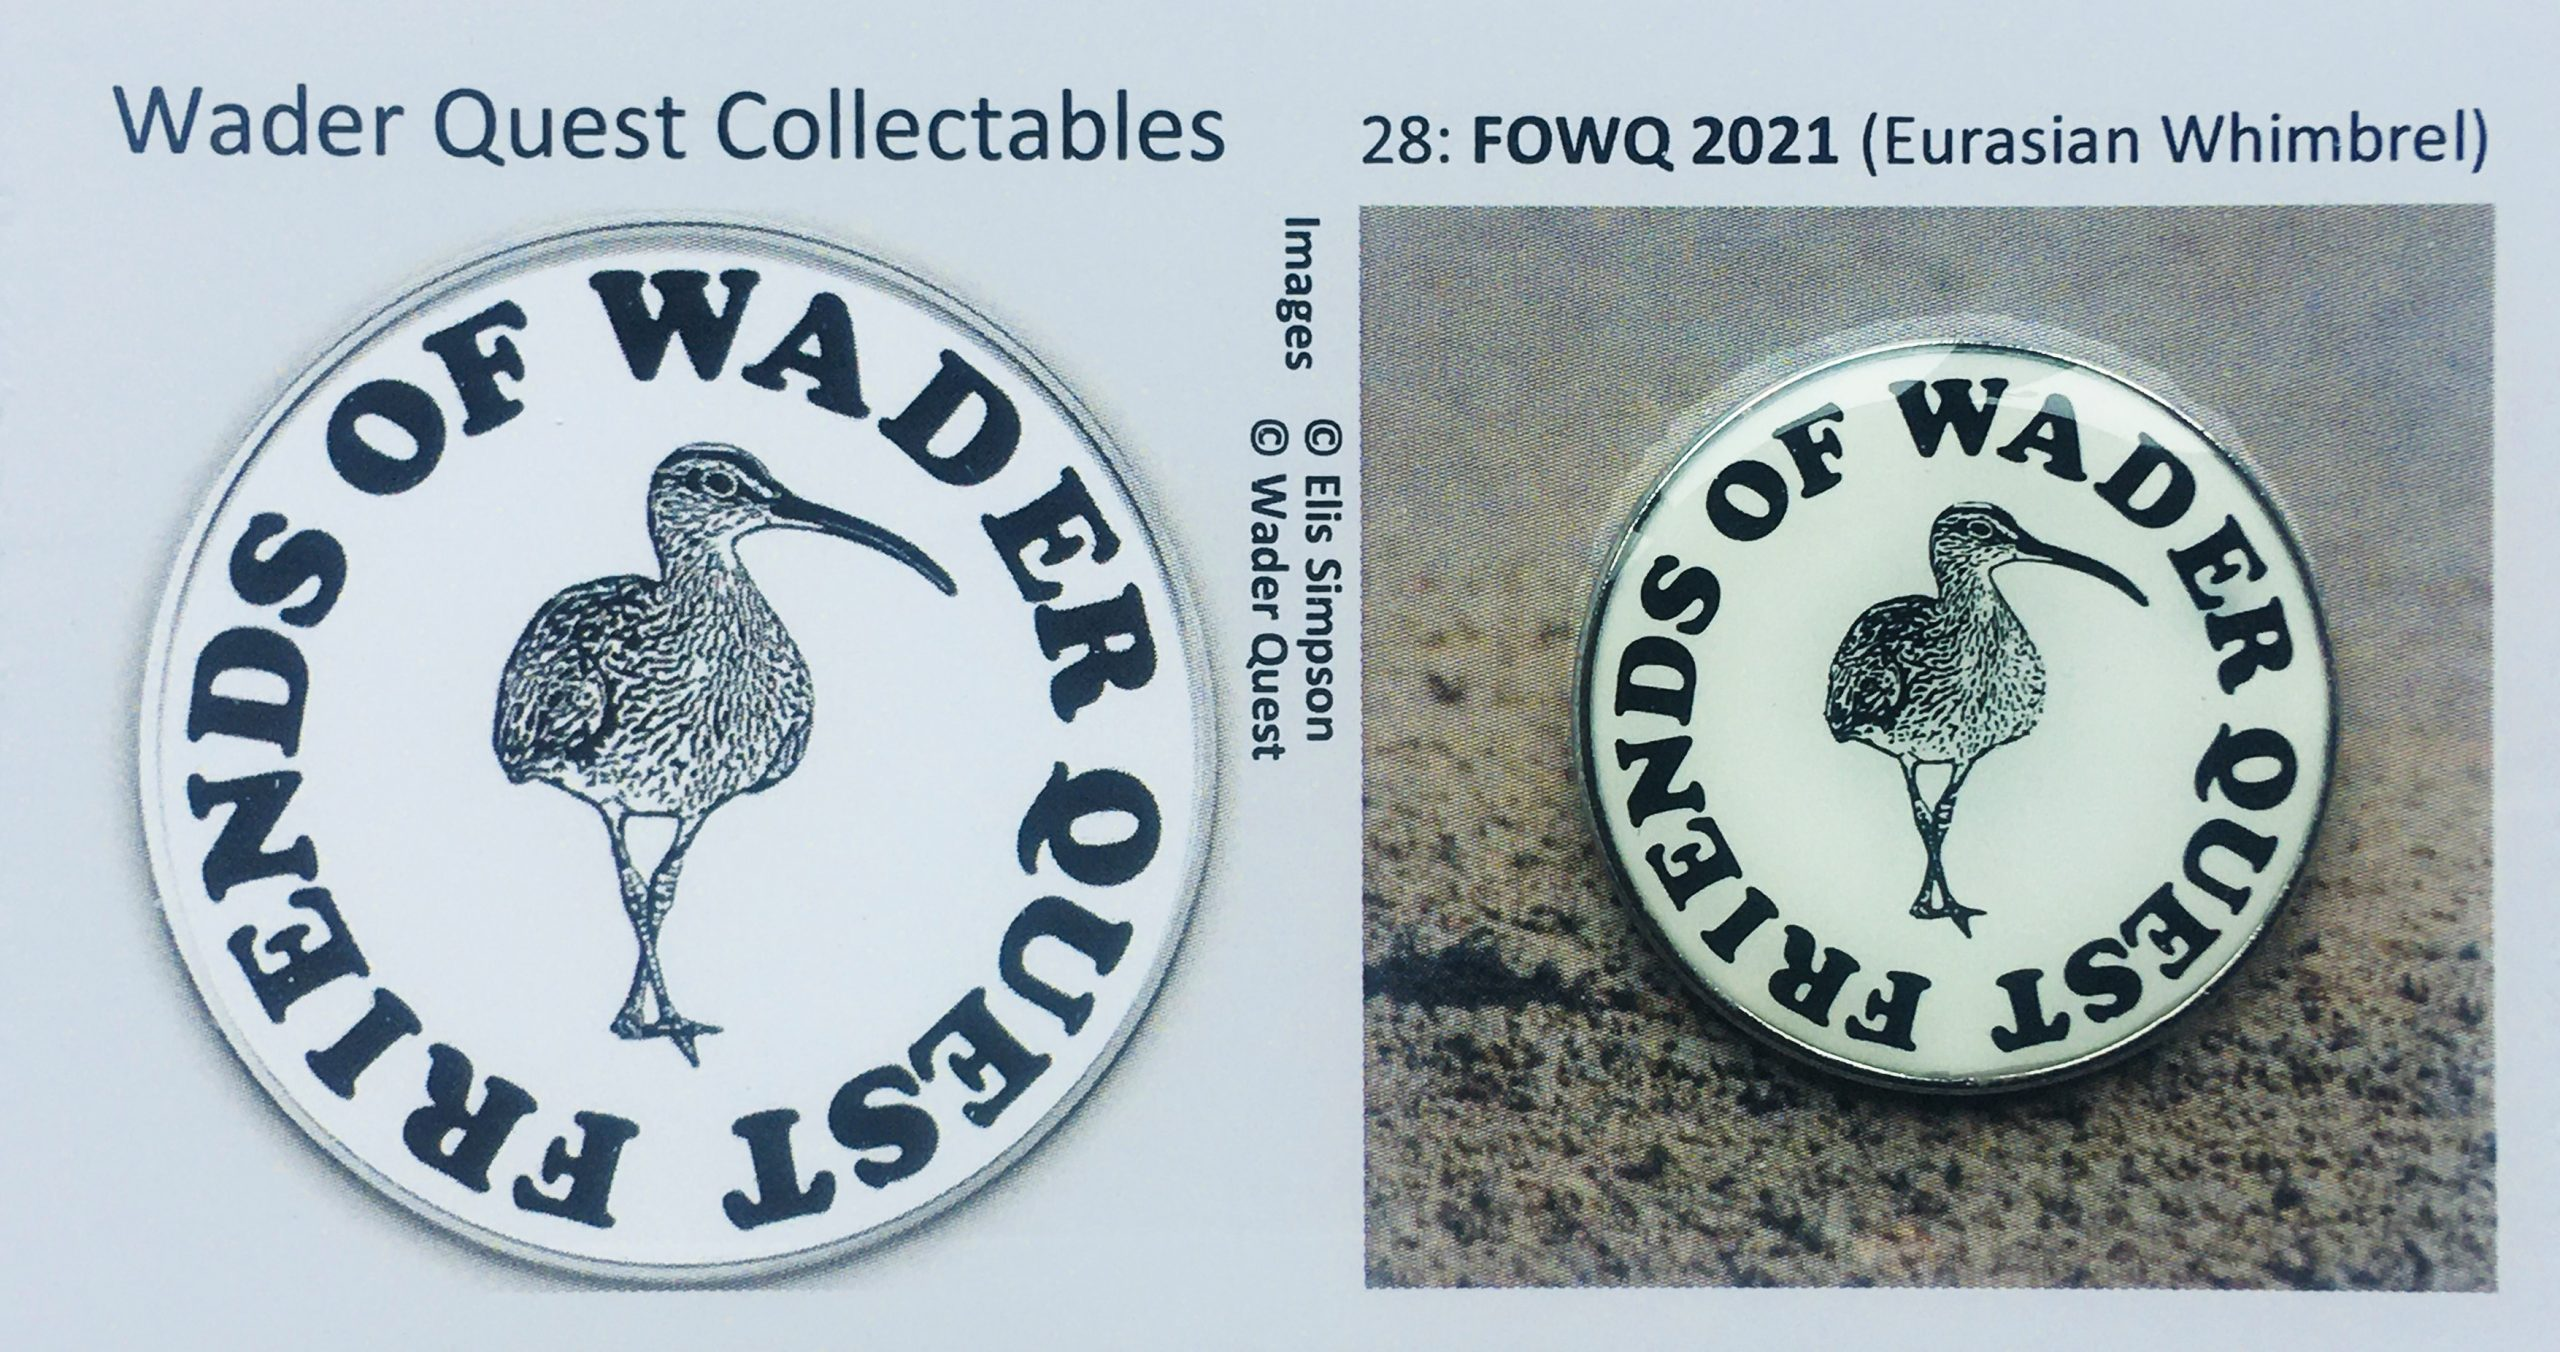 Nº28 Friends of Wader Quest